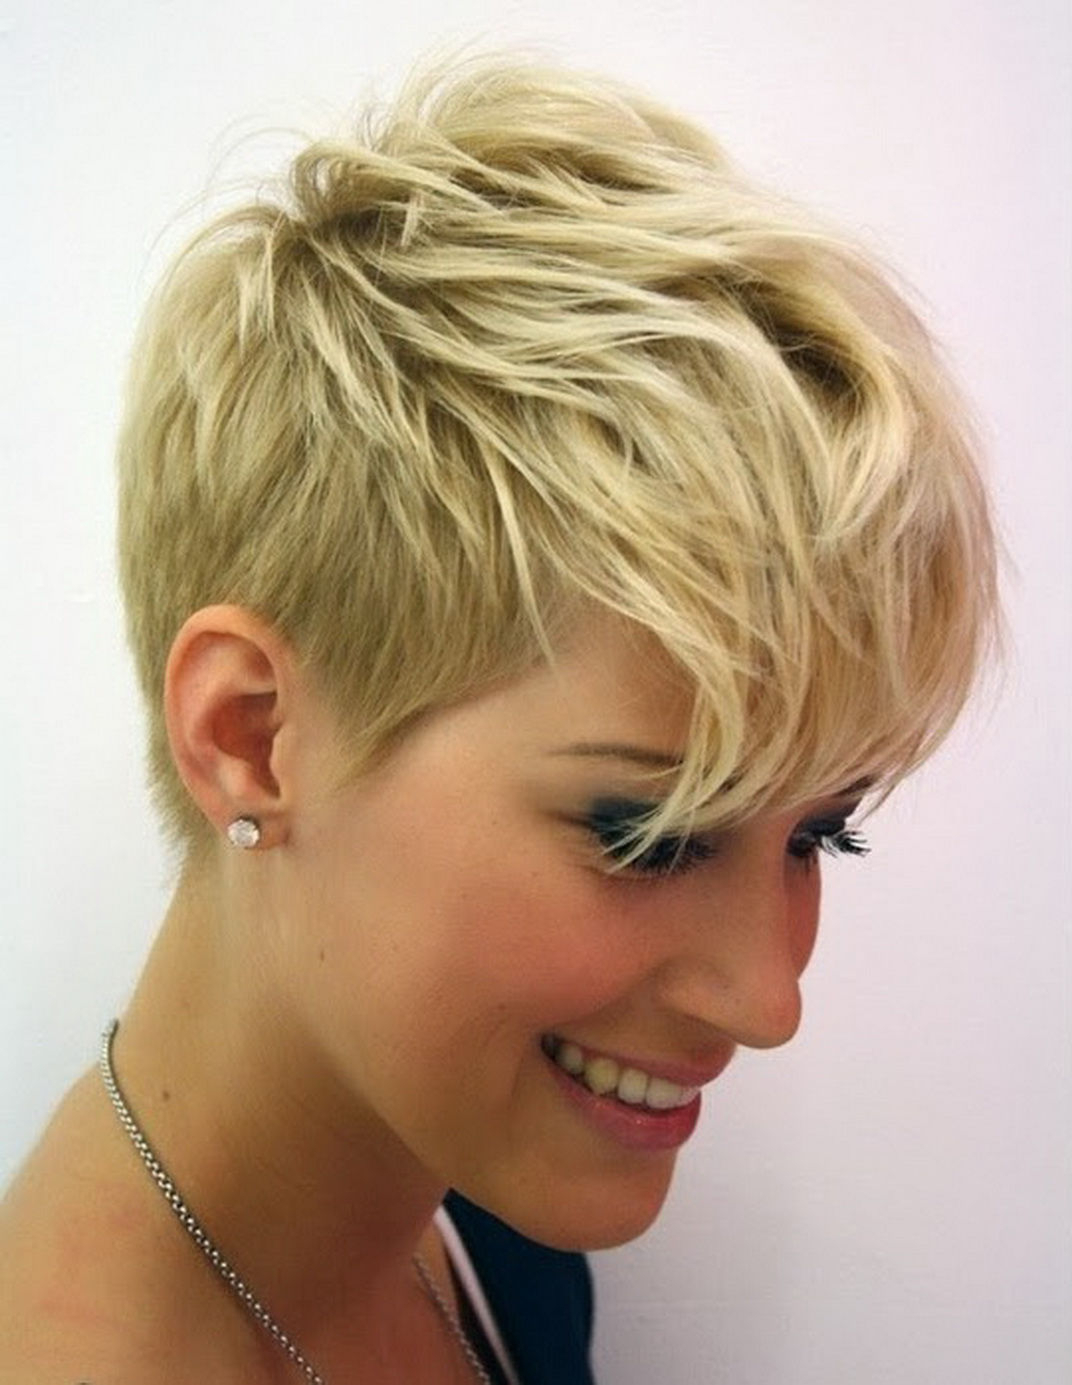 Short Hairstyles For Summer 2014 – Fashionsy Inside Short Hairstyles For Summer (View 3 of 25)